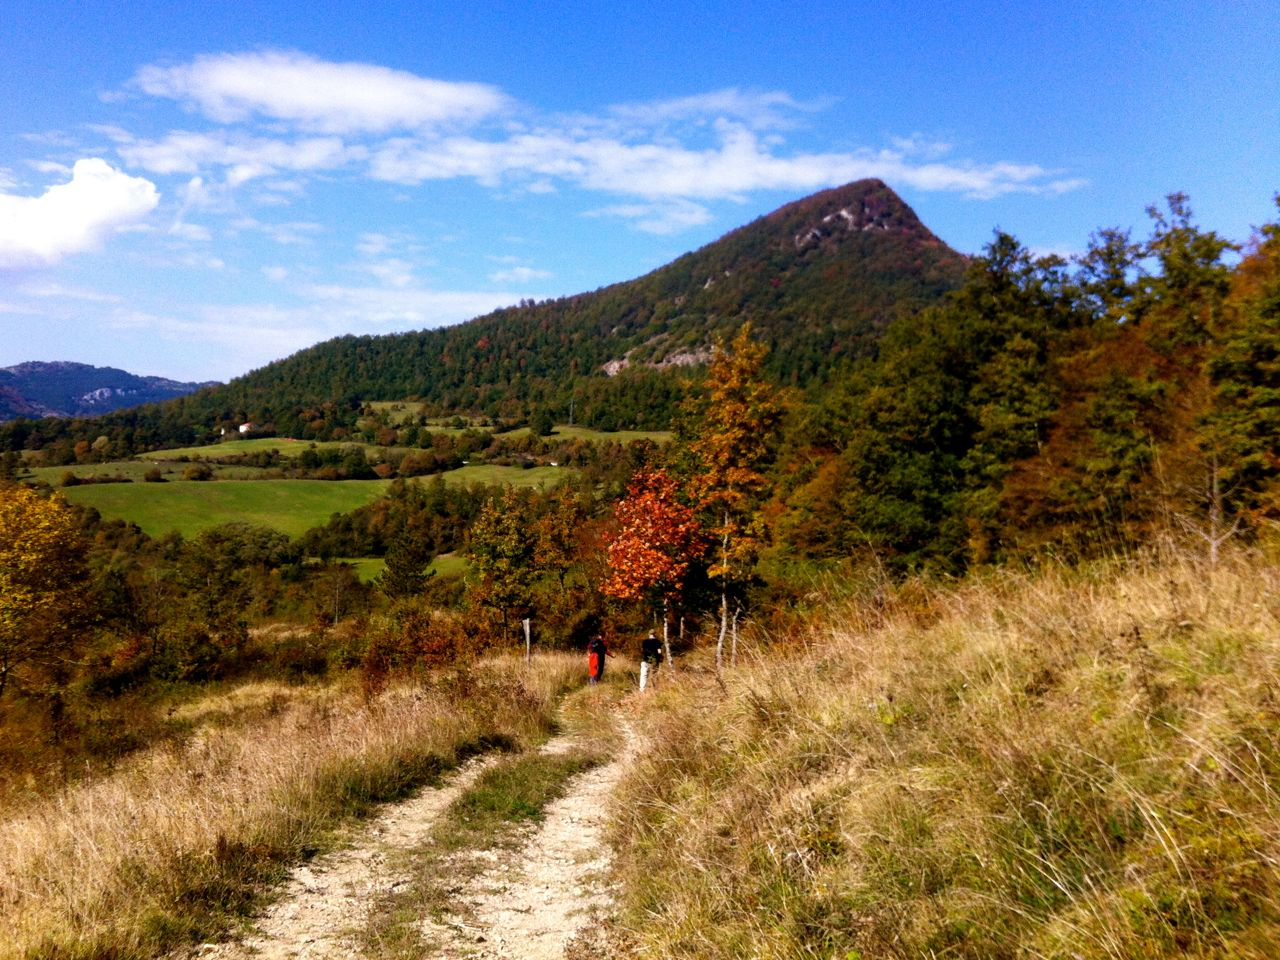 Molise is a great region in Italy for nature lovers